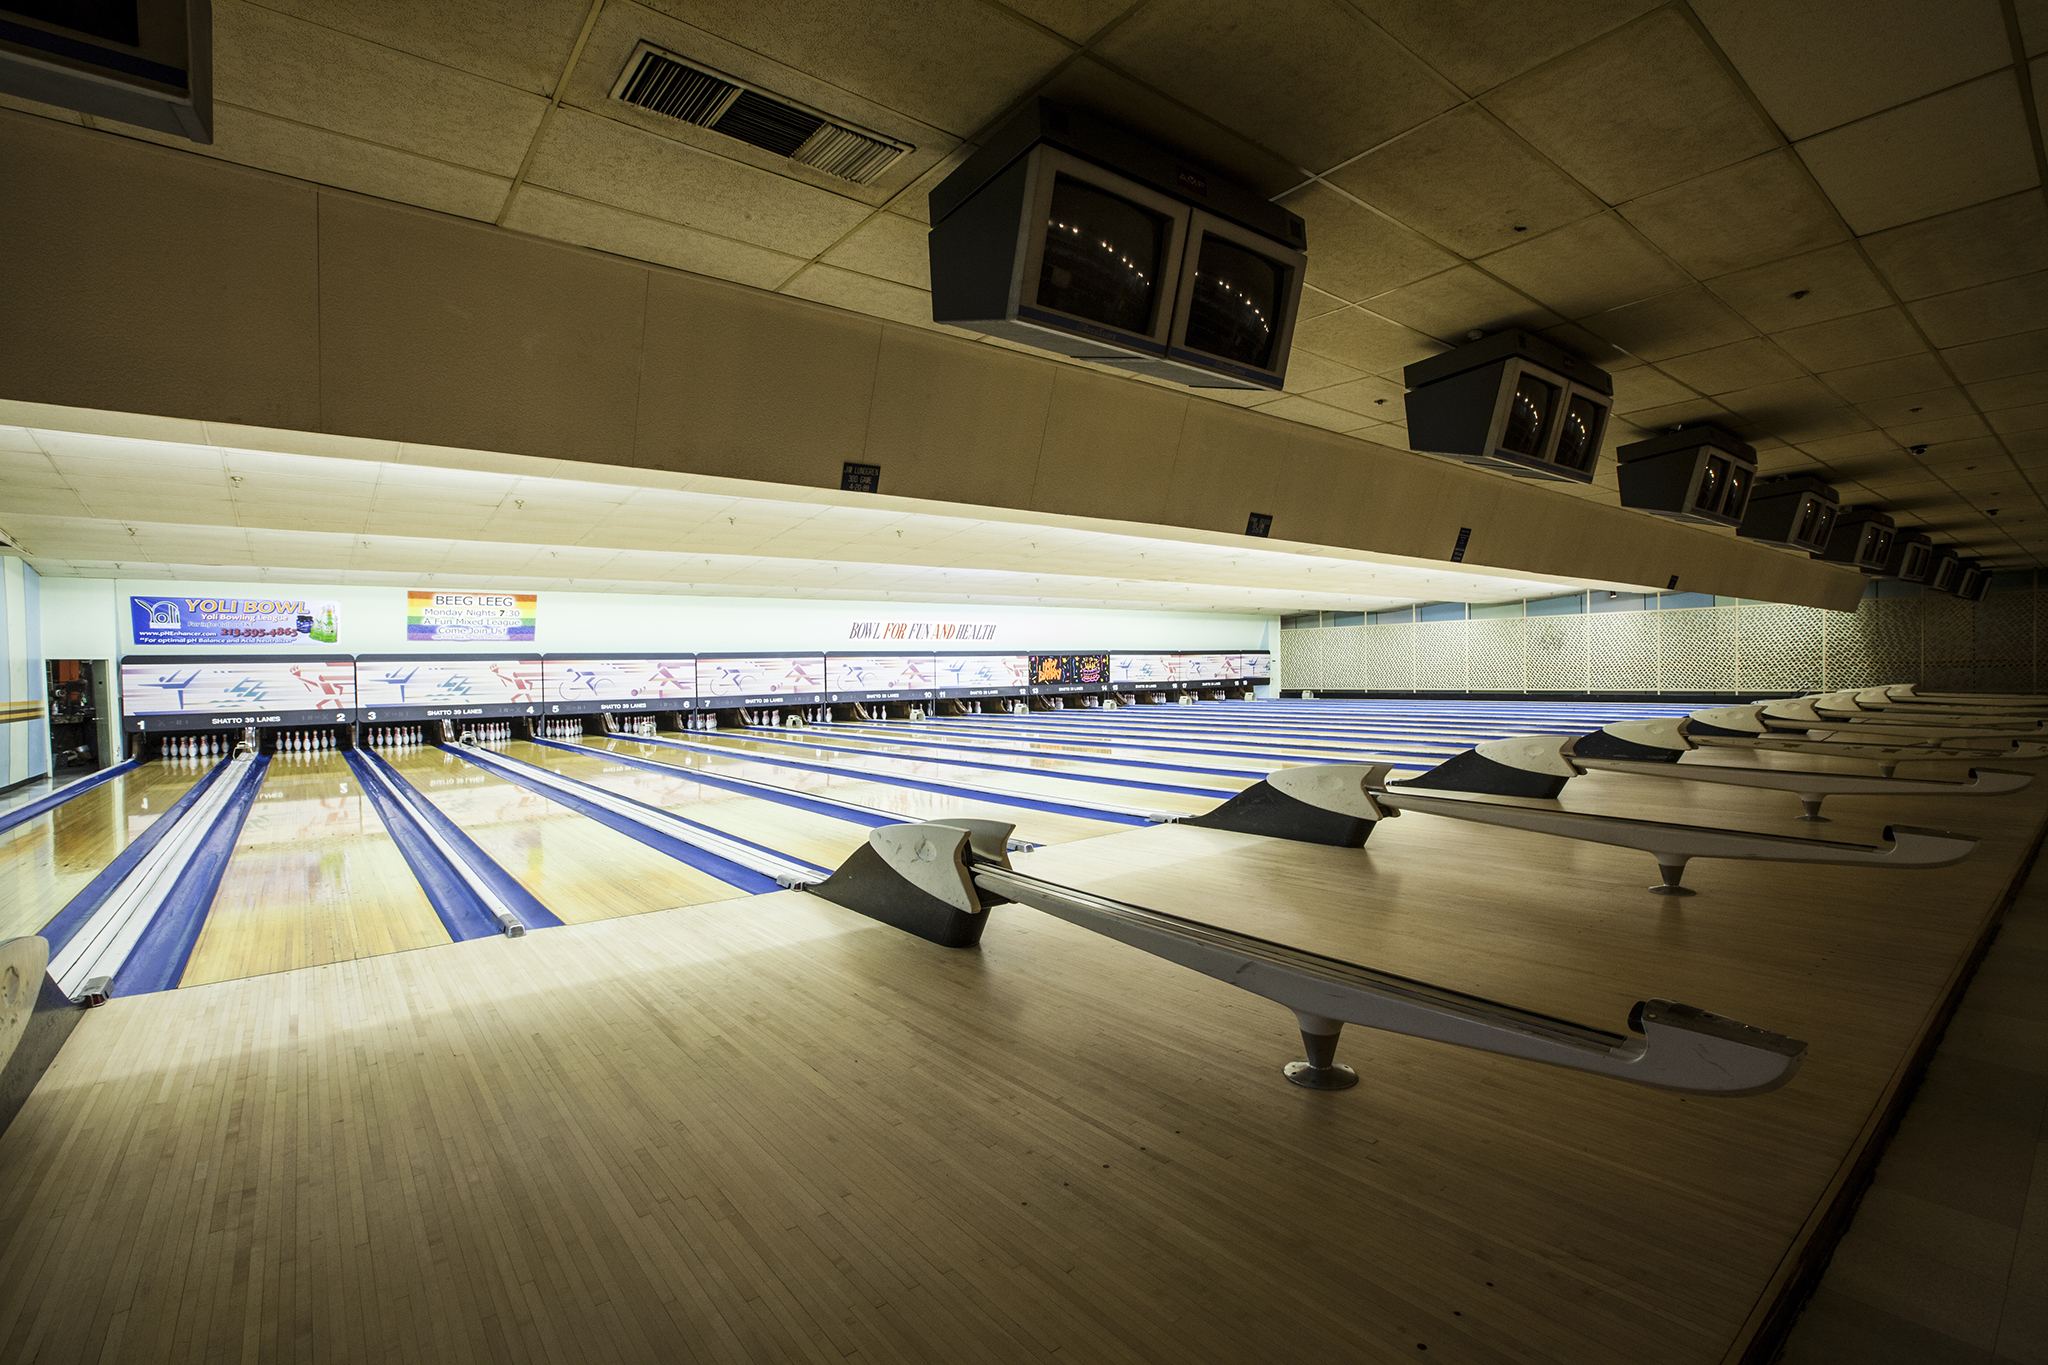 Teams of two: Shatto 39 Lanes